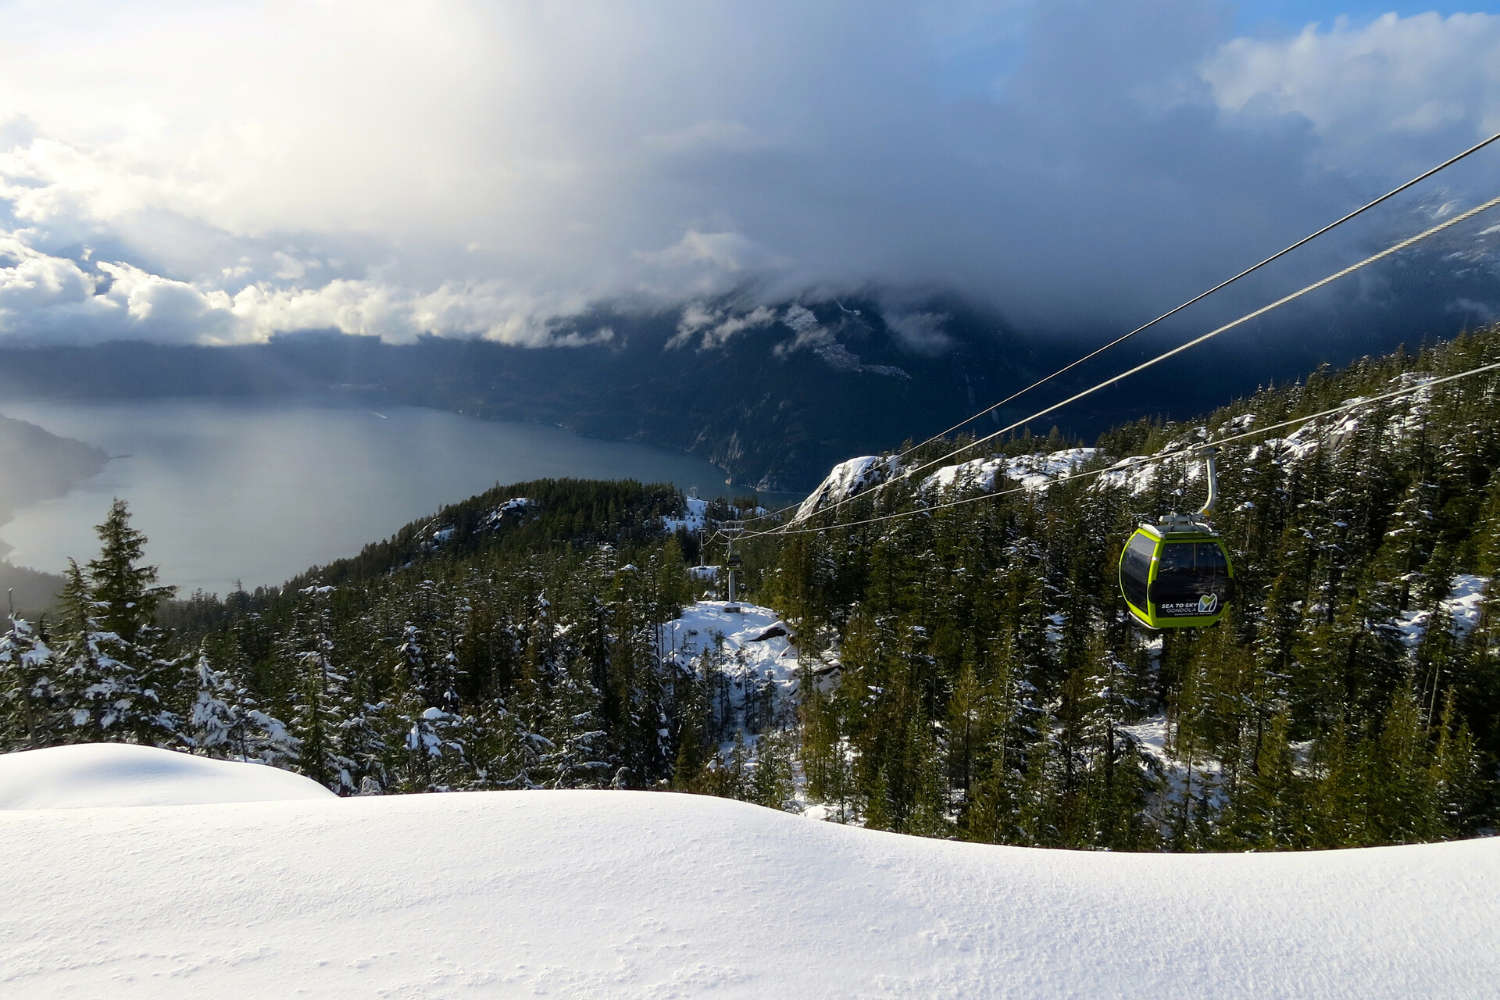 SView from Summit Lodge down the tram line to Howe Sound and Squamish